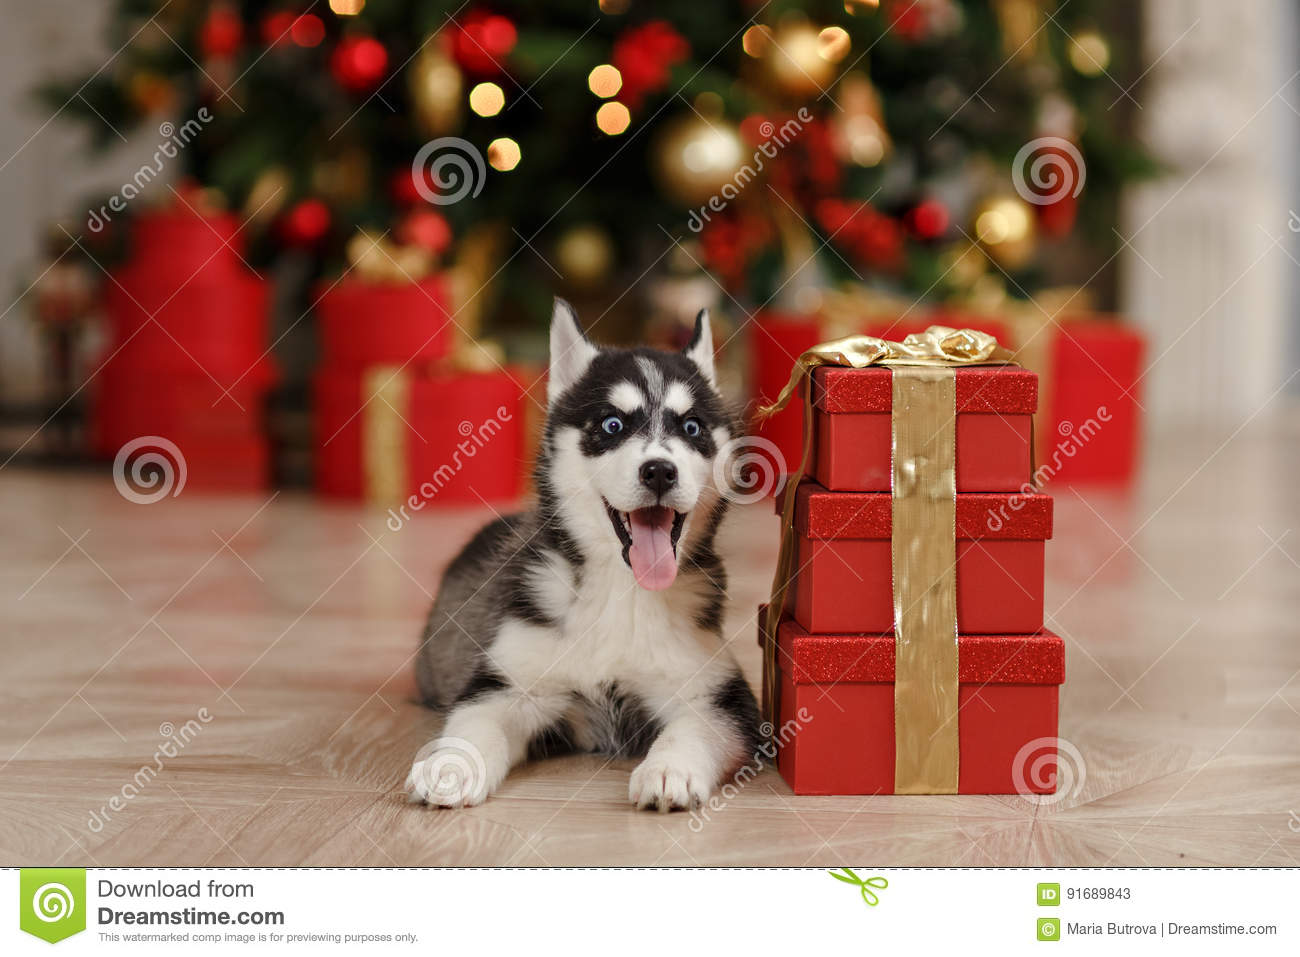 Husky Christmas Puppy.Black And White Husky Puppy In A Christmas Tree Is In Stock